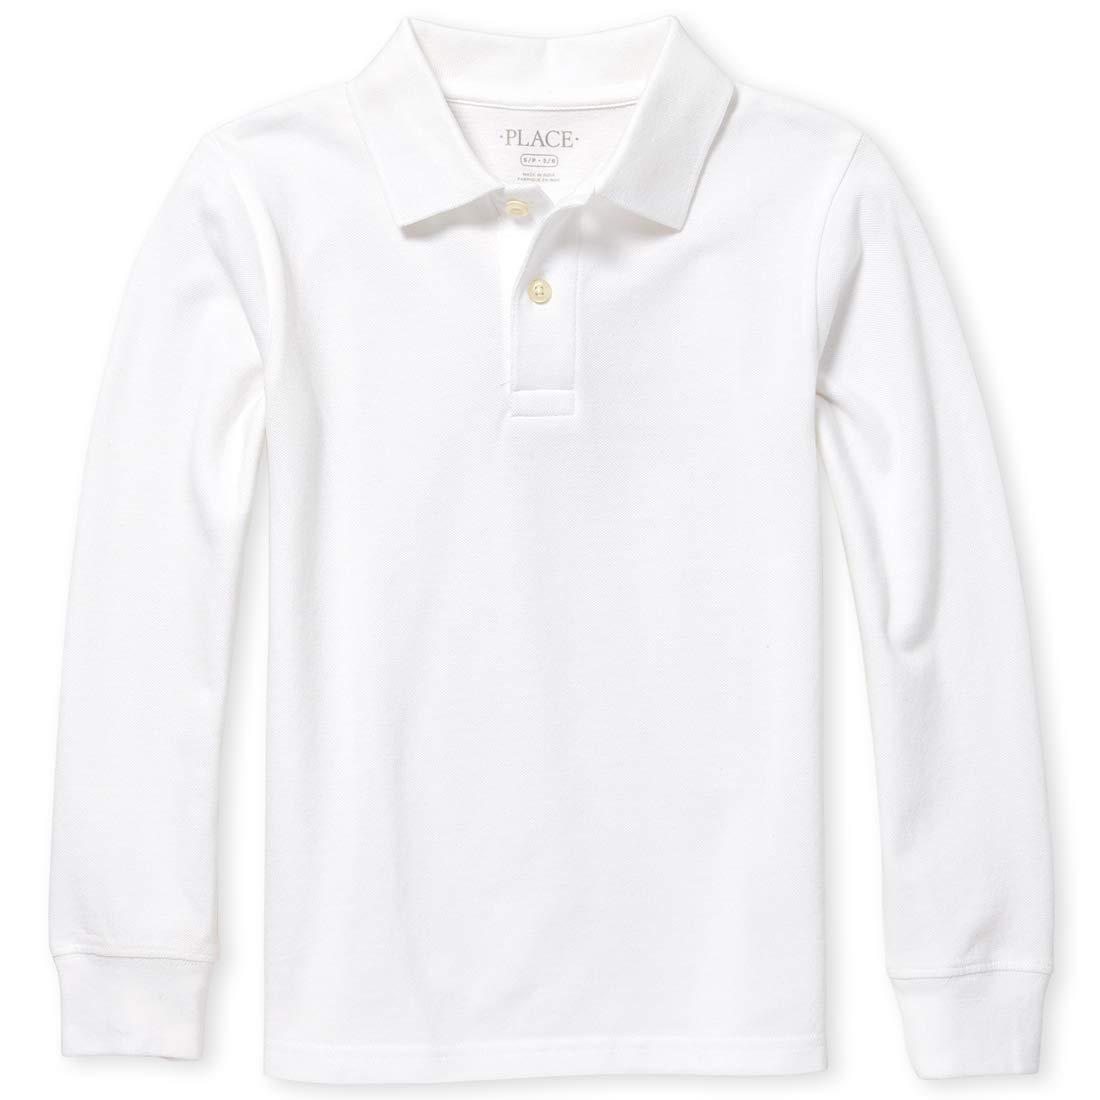 White 18-24 Months The Childrens Place Baby Boys Long Sleeve Uniform Polo